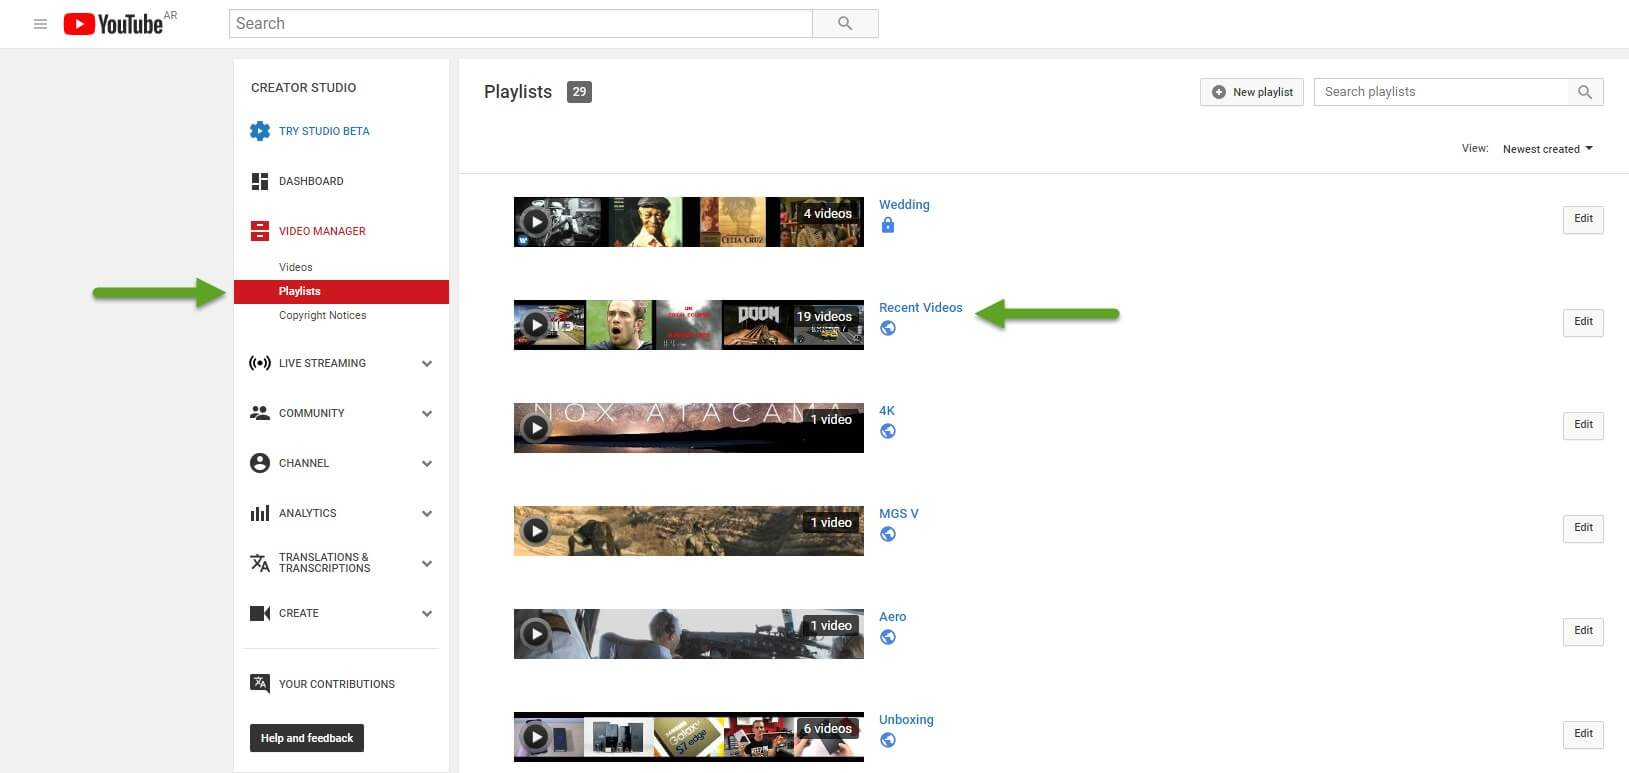 How To Re-Order Videos In YouTube Playlists | Daves Computer